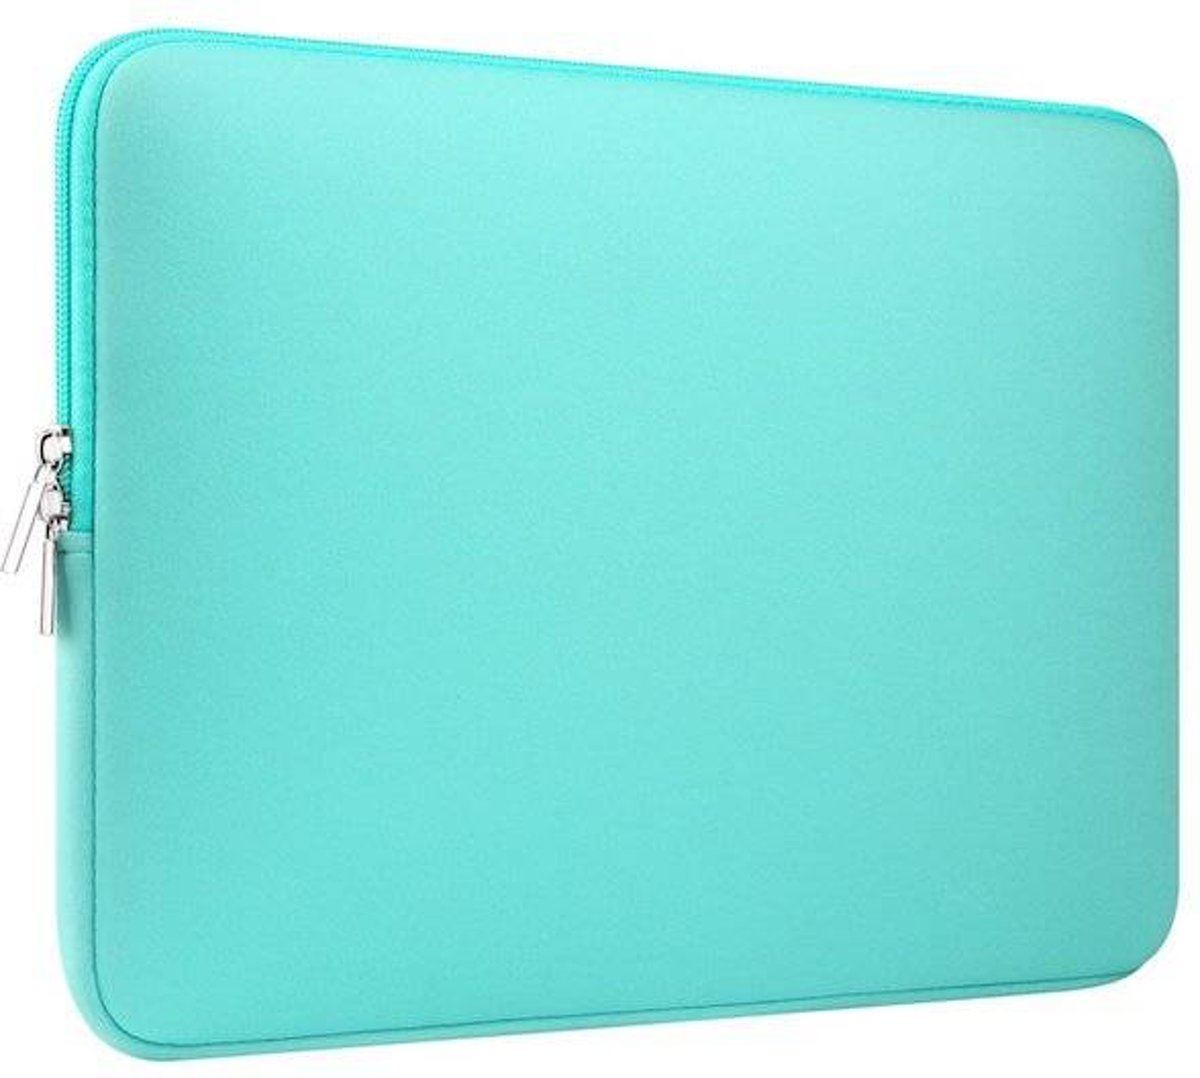 Dell XPS - Neopreen Laptop Sleeve - 13.3 inch - Turquoise